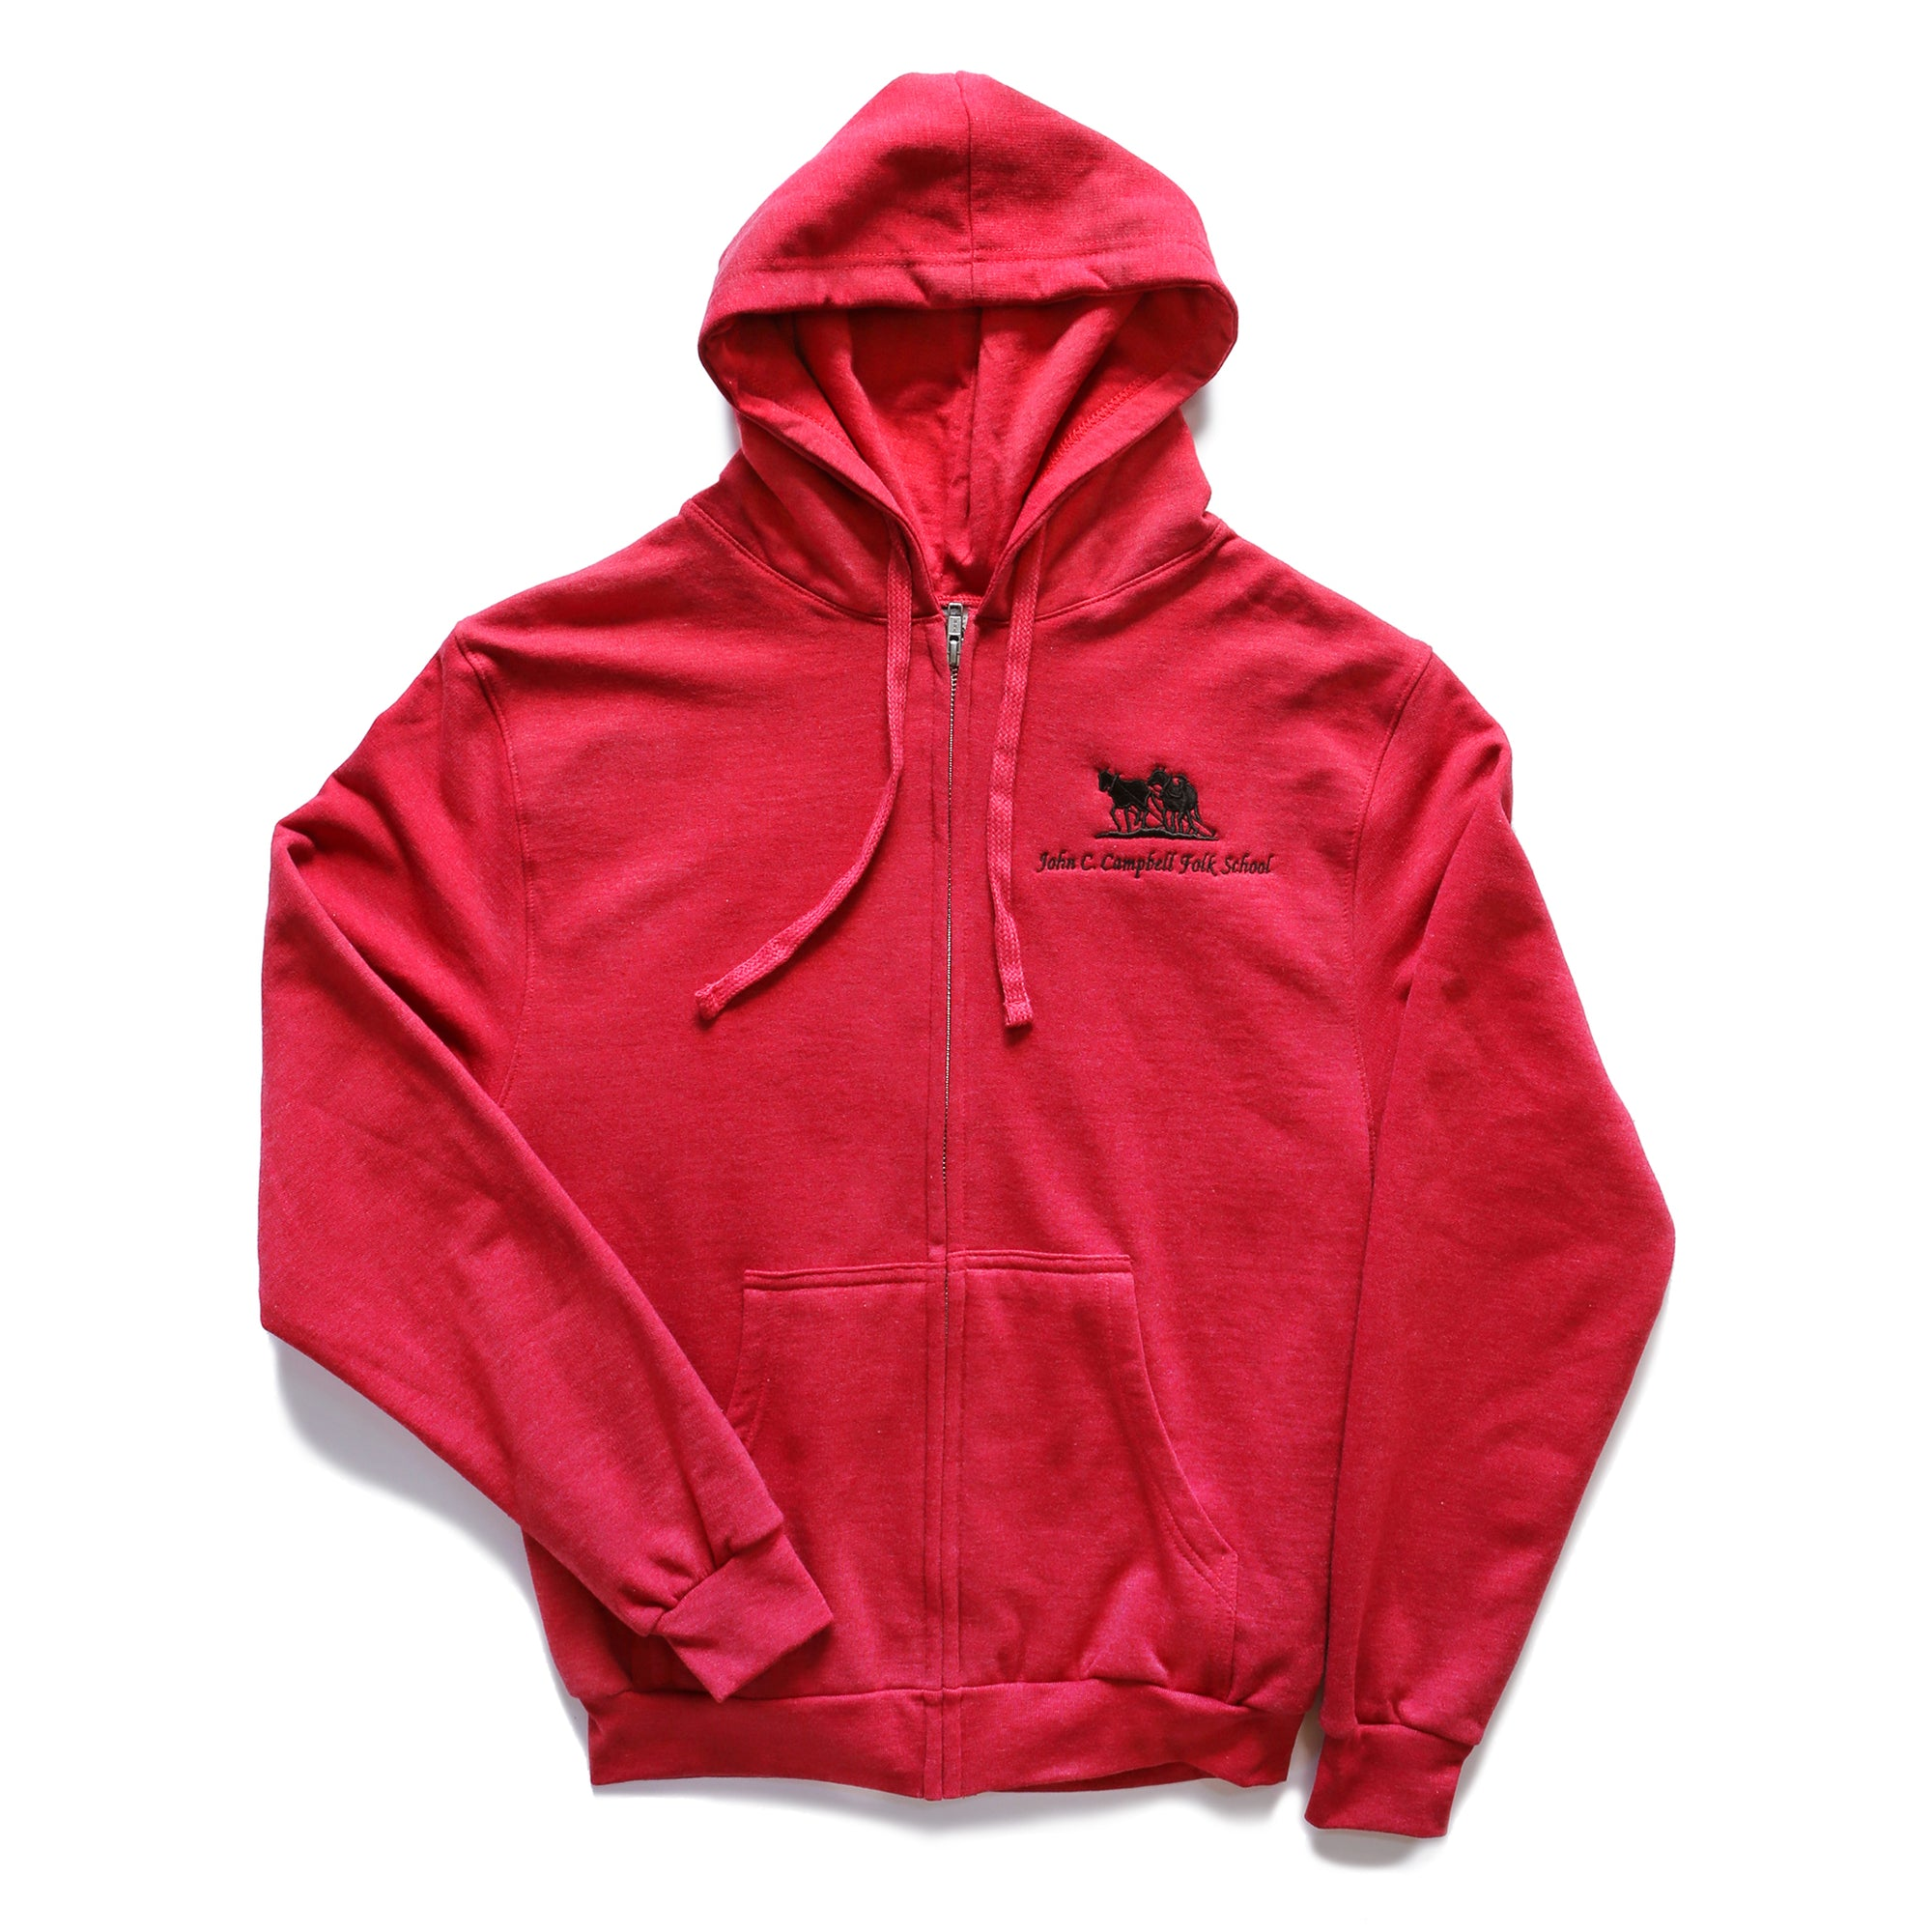 3X Logo Heather Red Hoodie